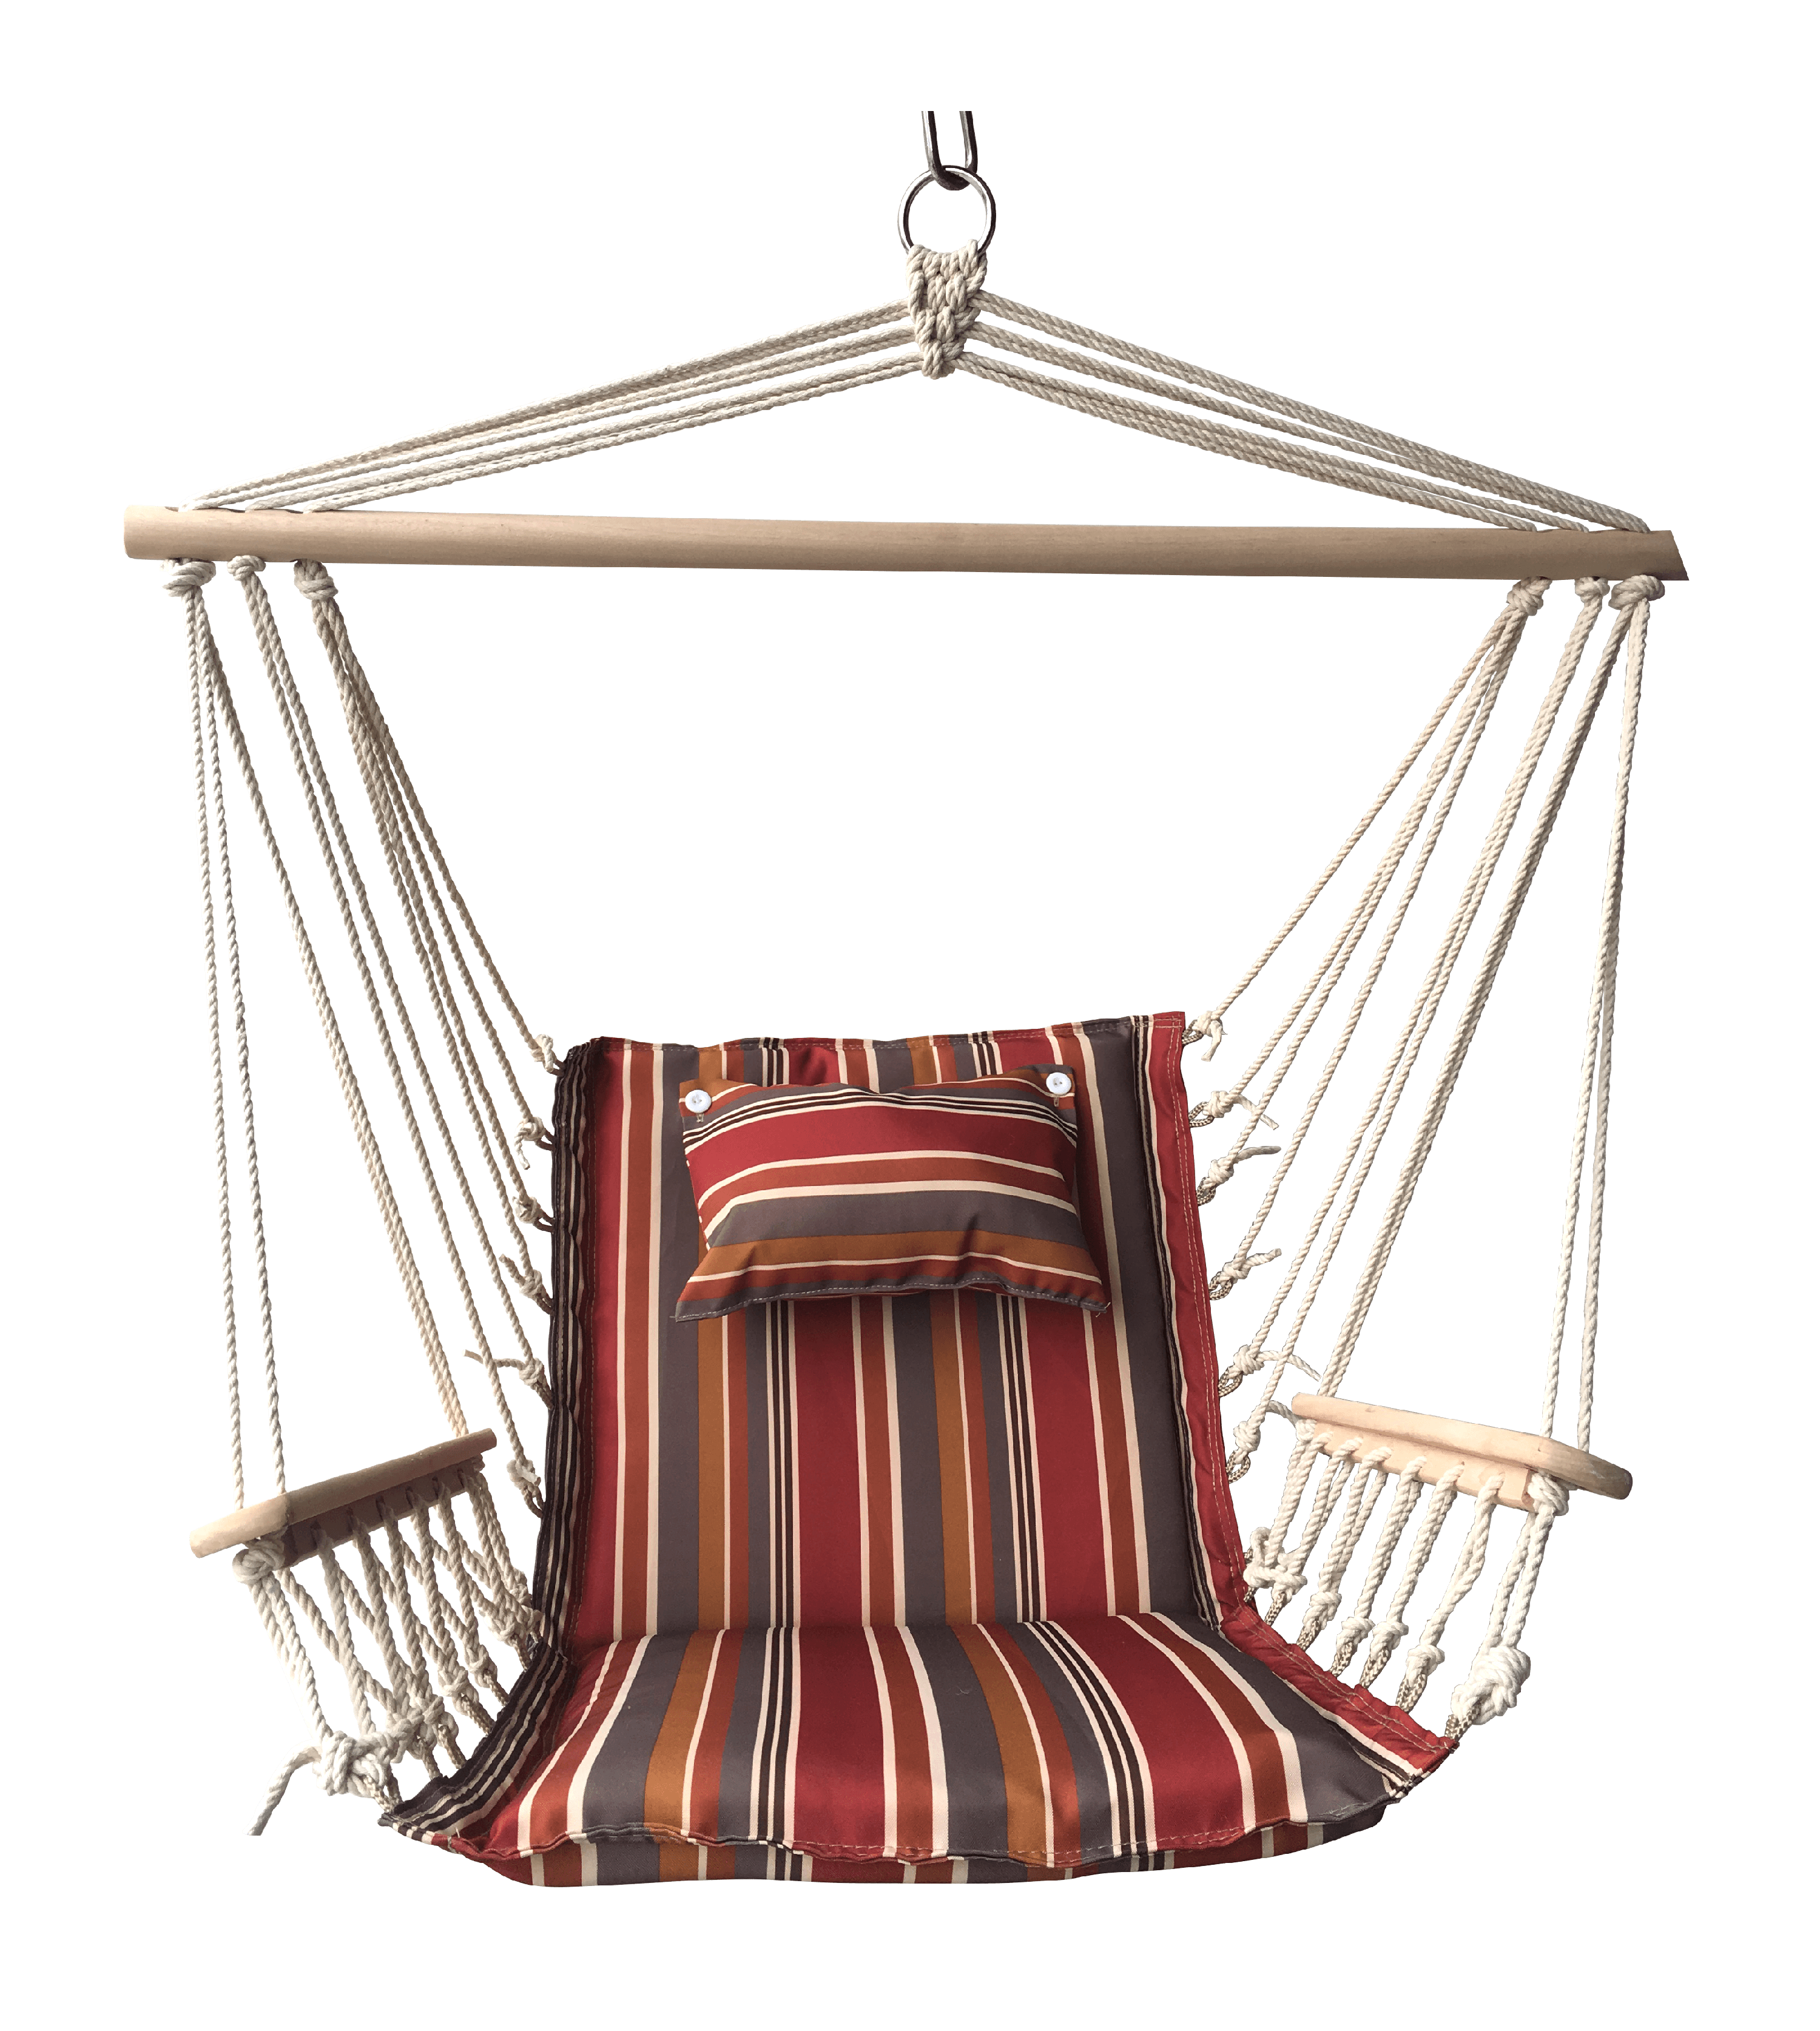 Spice Striped Hanging Hammock Swing Chair with Pillow Headrest and Arms